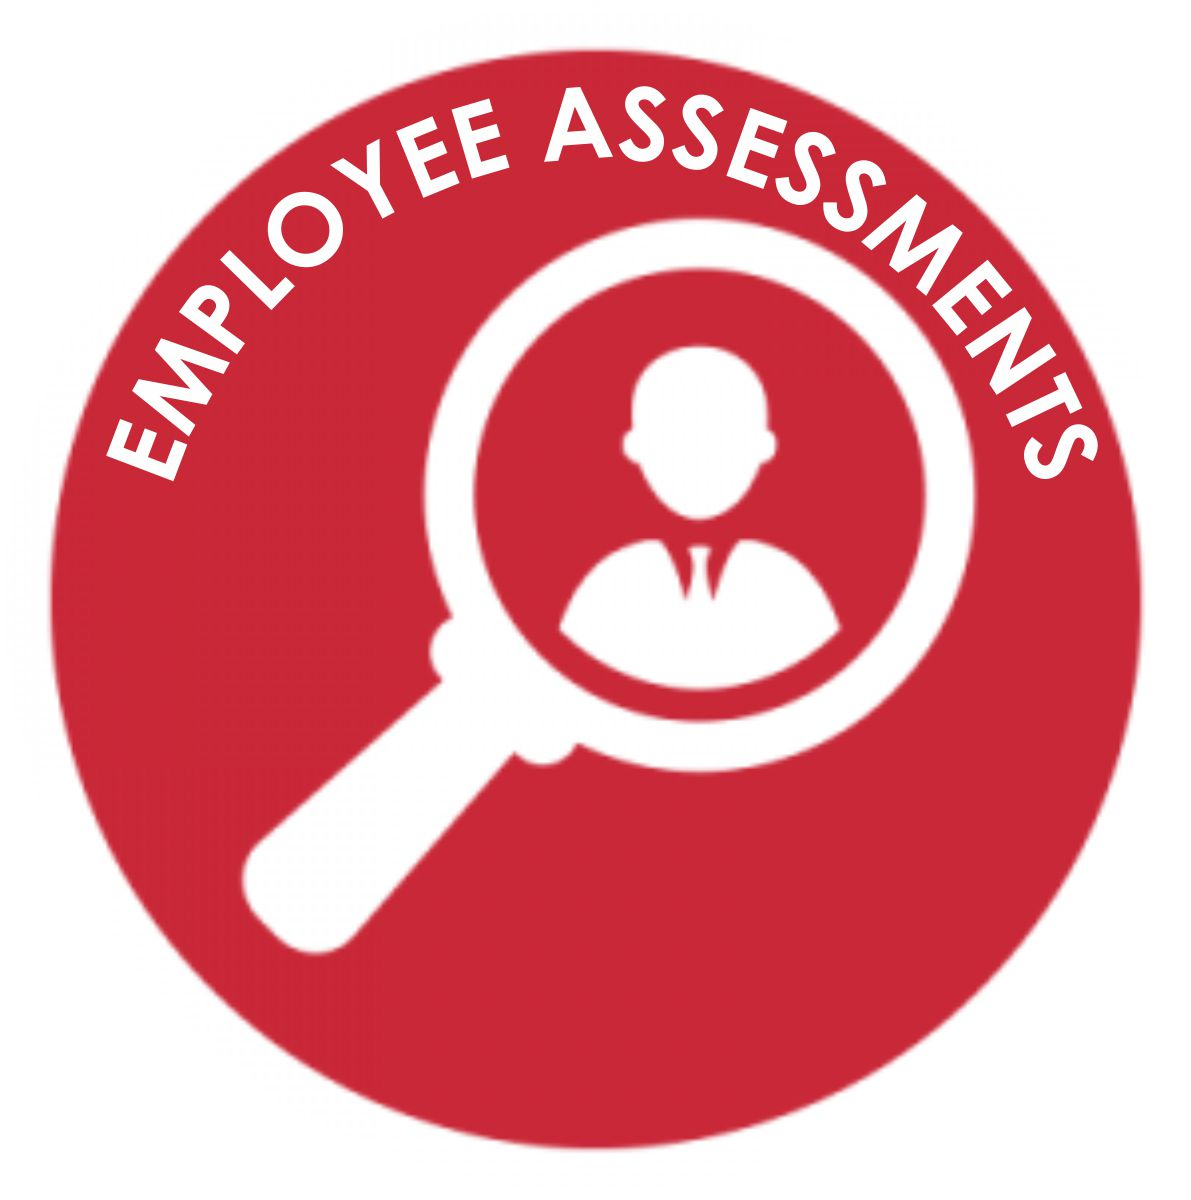 Employee Assessment